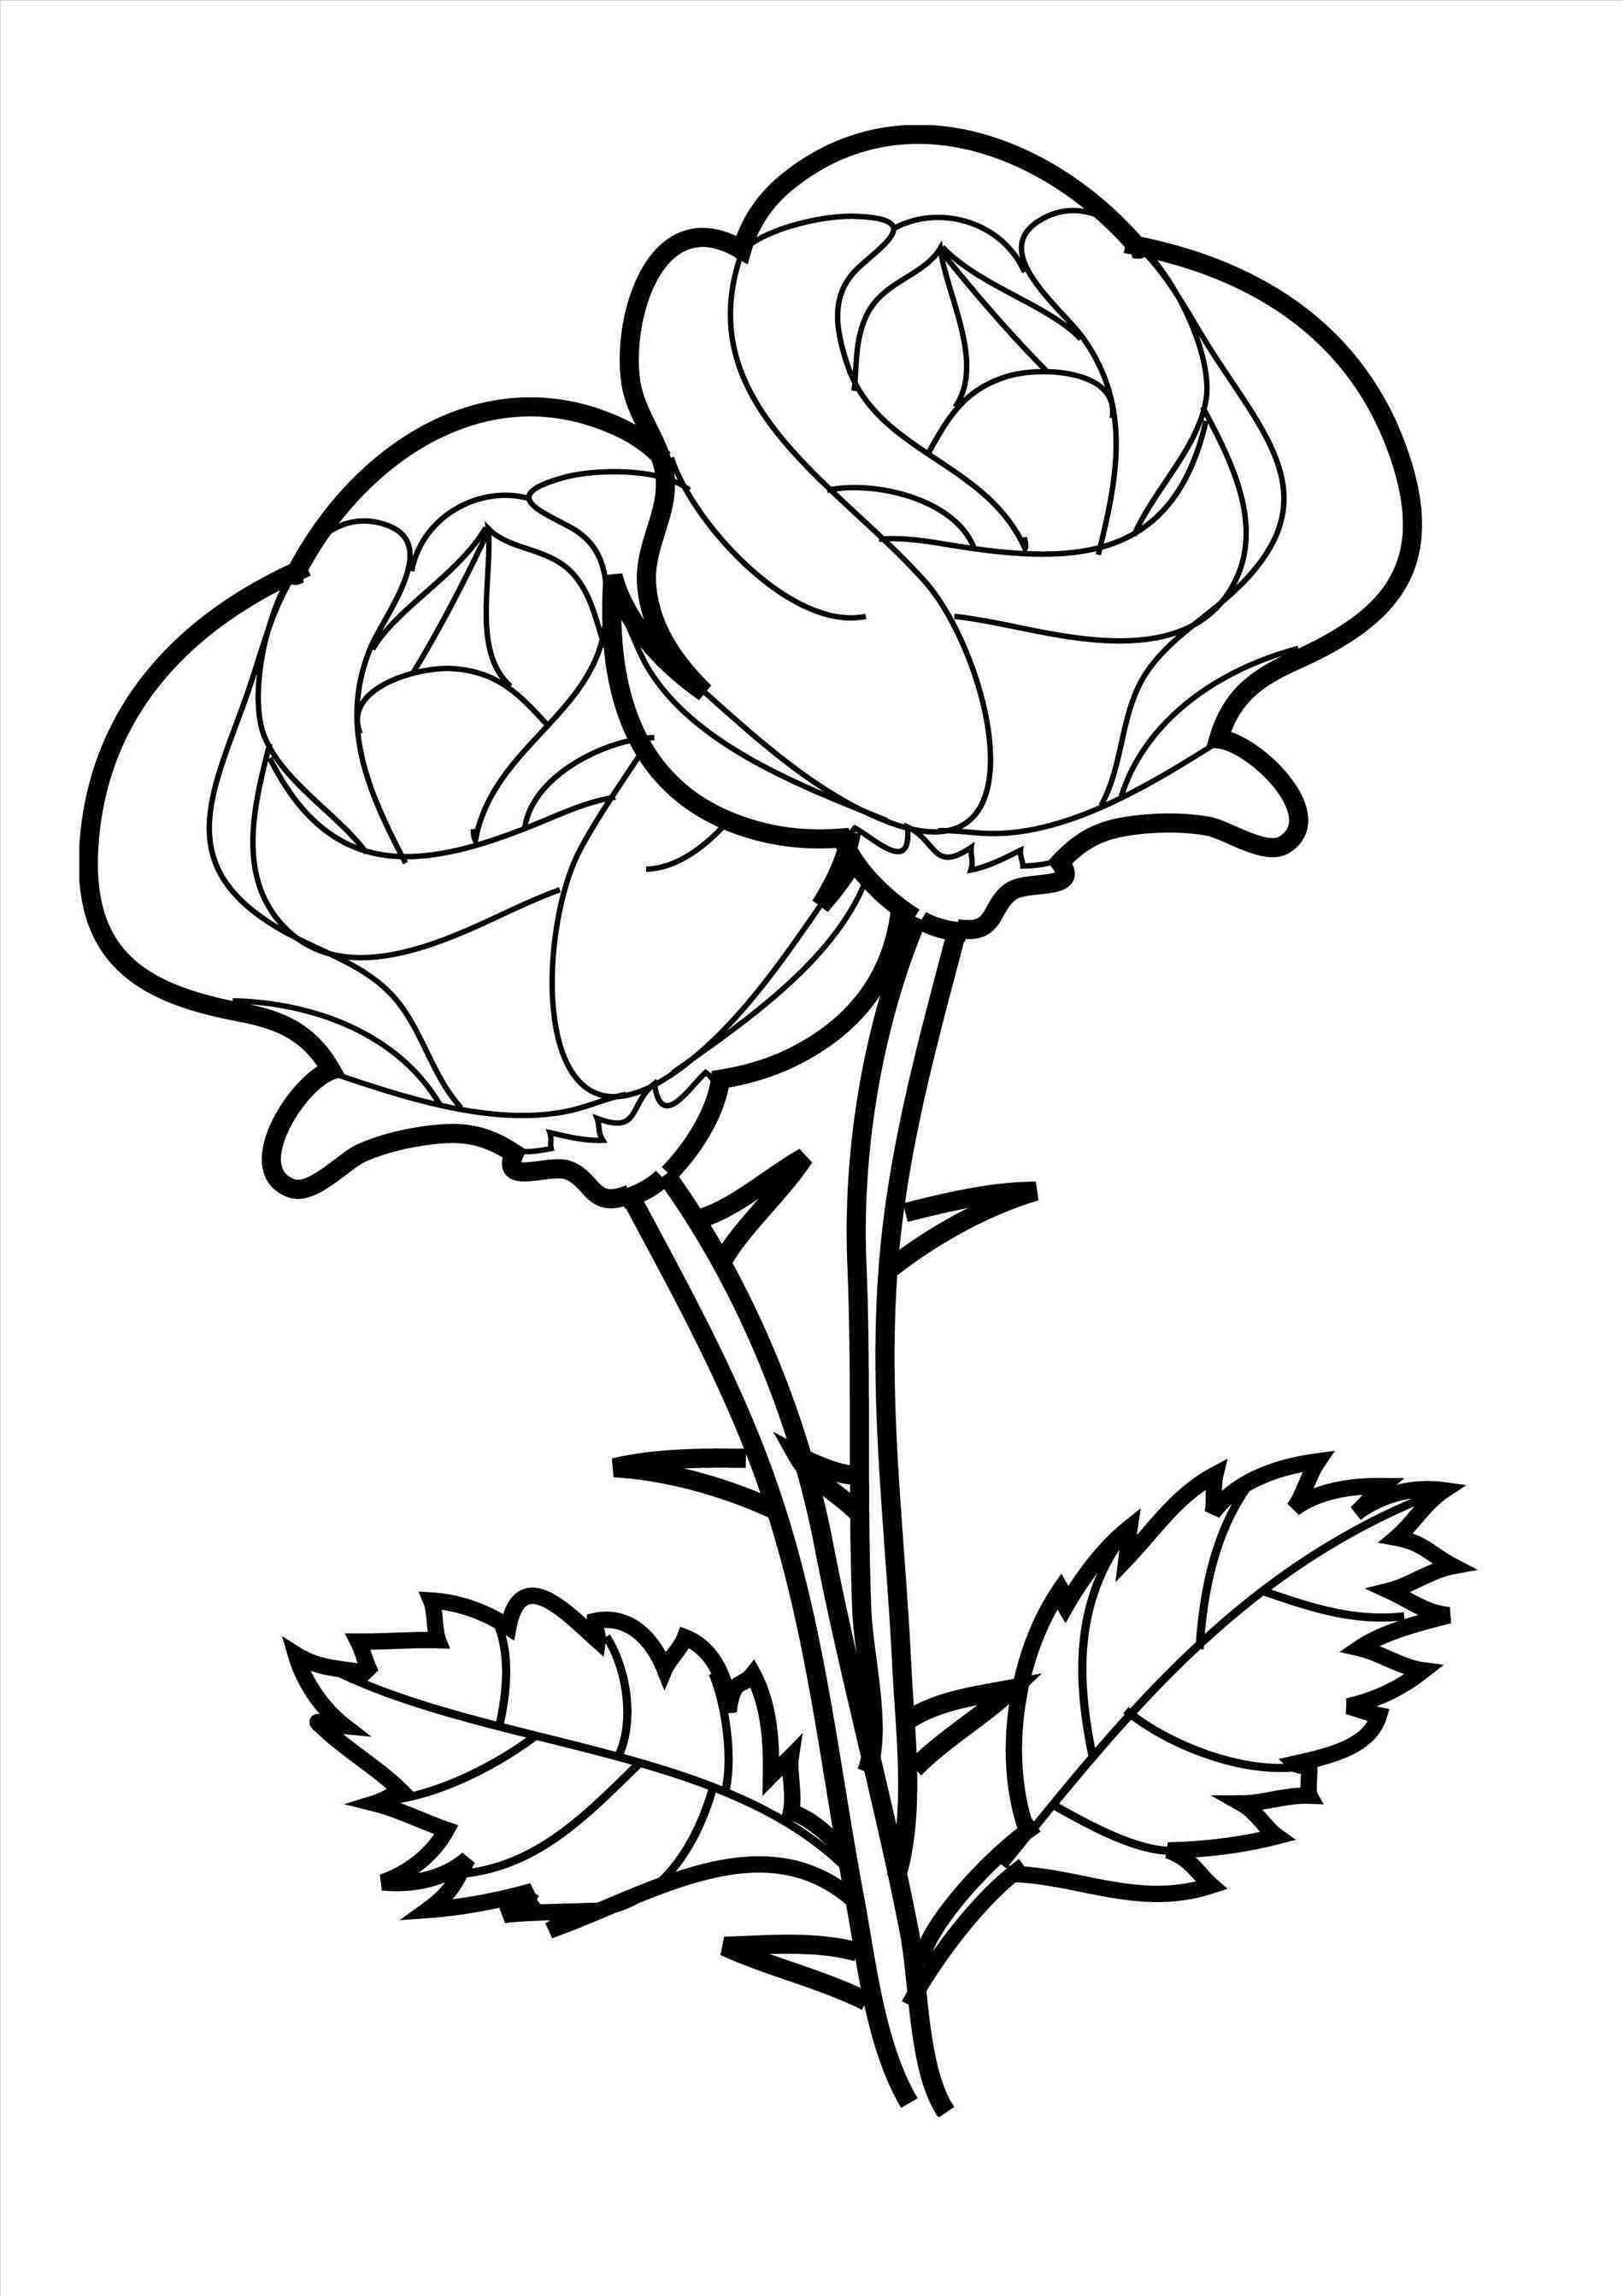 - Flower Drawings For Kids (With Images) Flower Coloring Pages